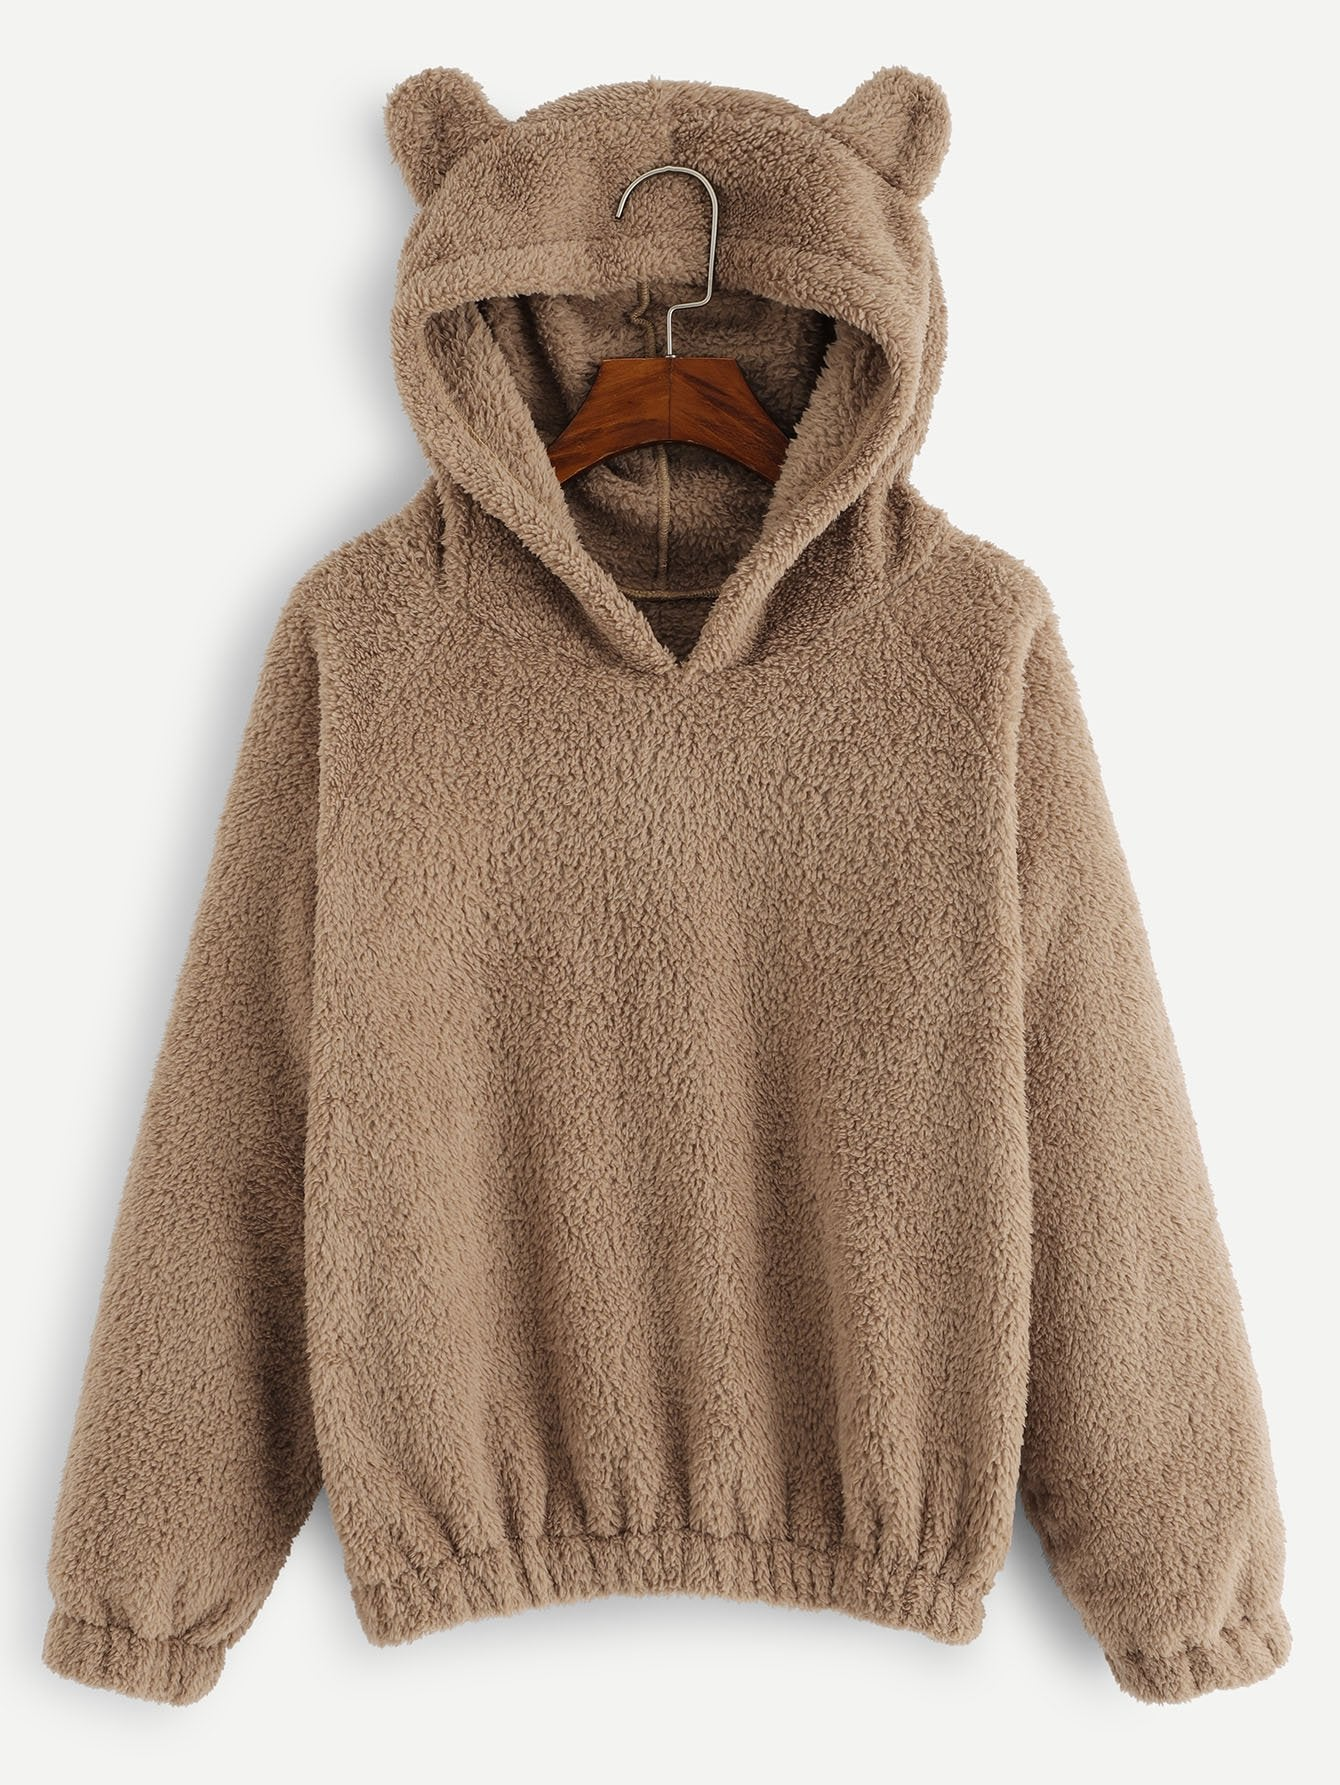 Solid Hooded Teddy Sweatshirt-Sunshine's Boutique & Gifts